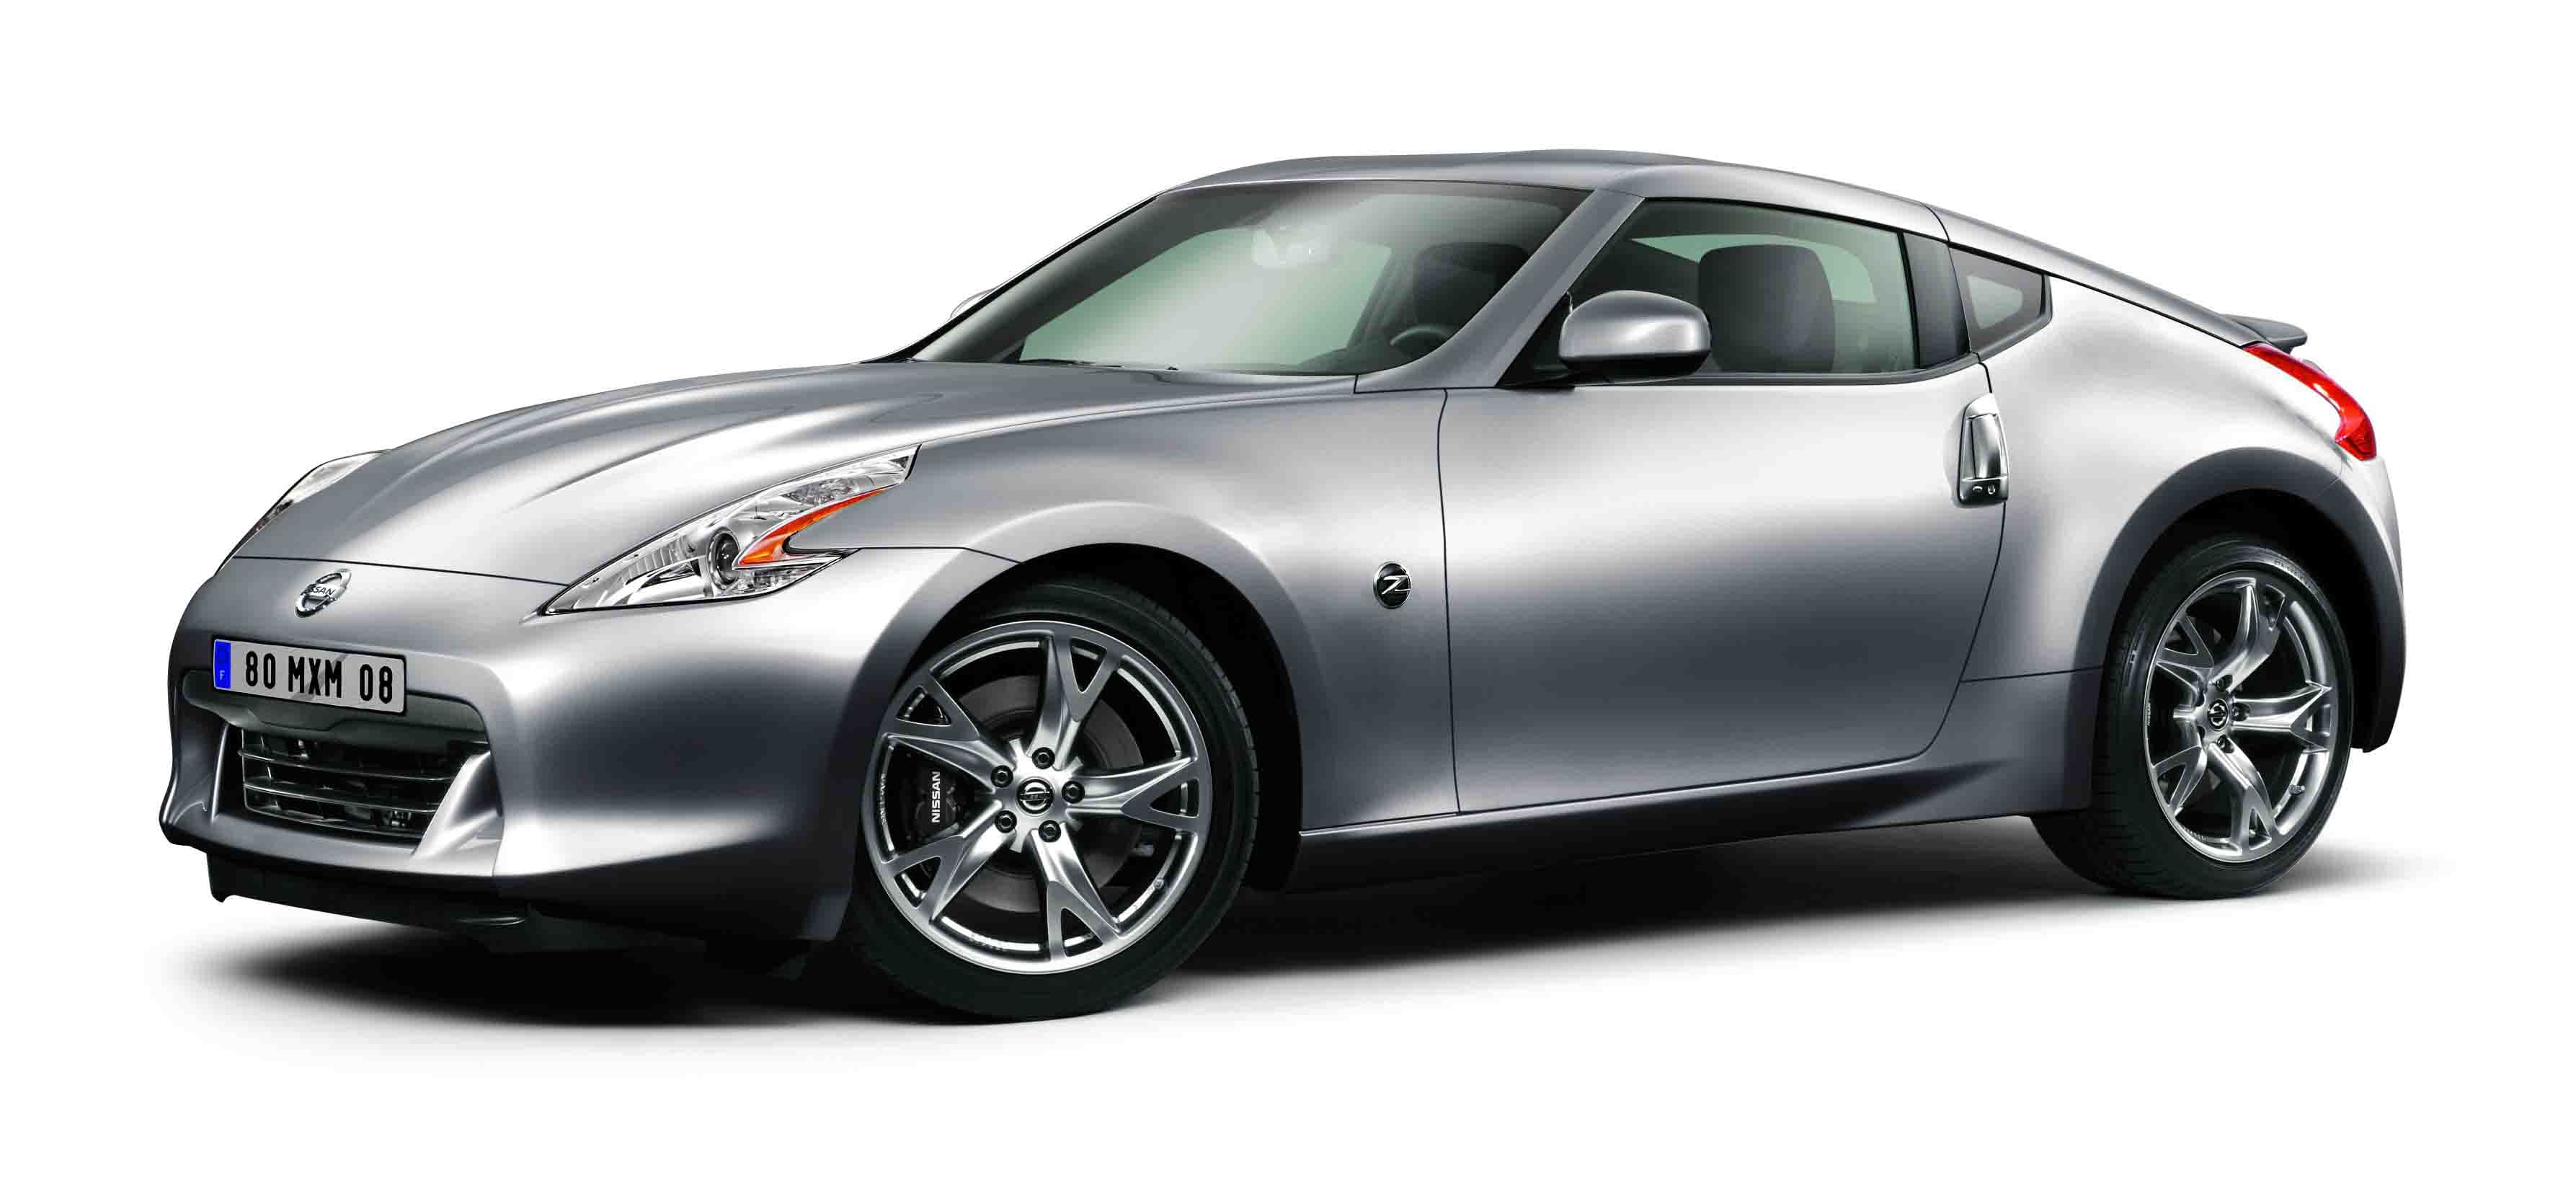 nissan cars prices reviews new nissan cars in india specs news. Black Bedroom Furniture Sets. Home Design Ideas